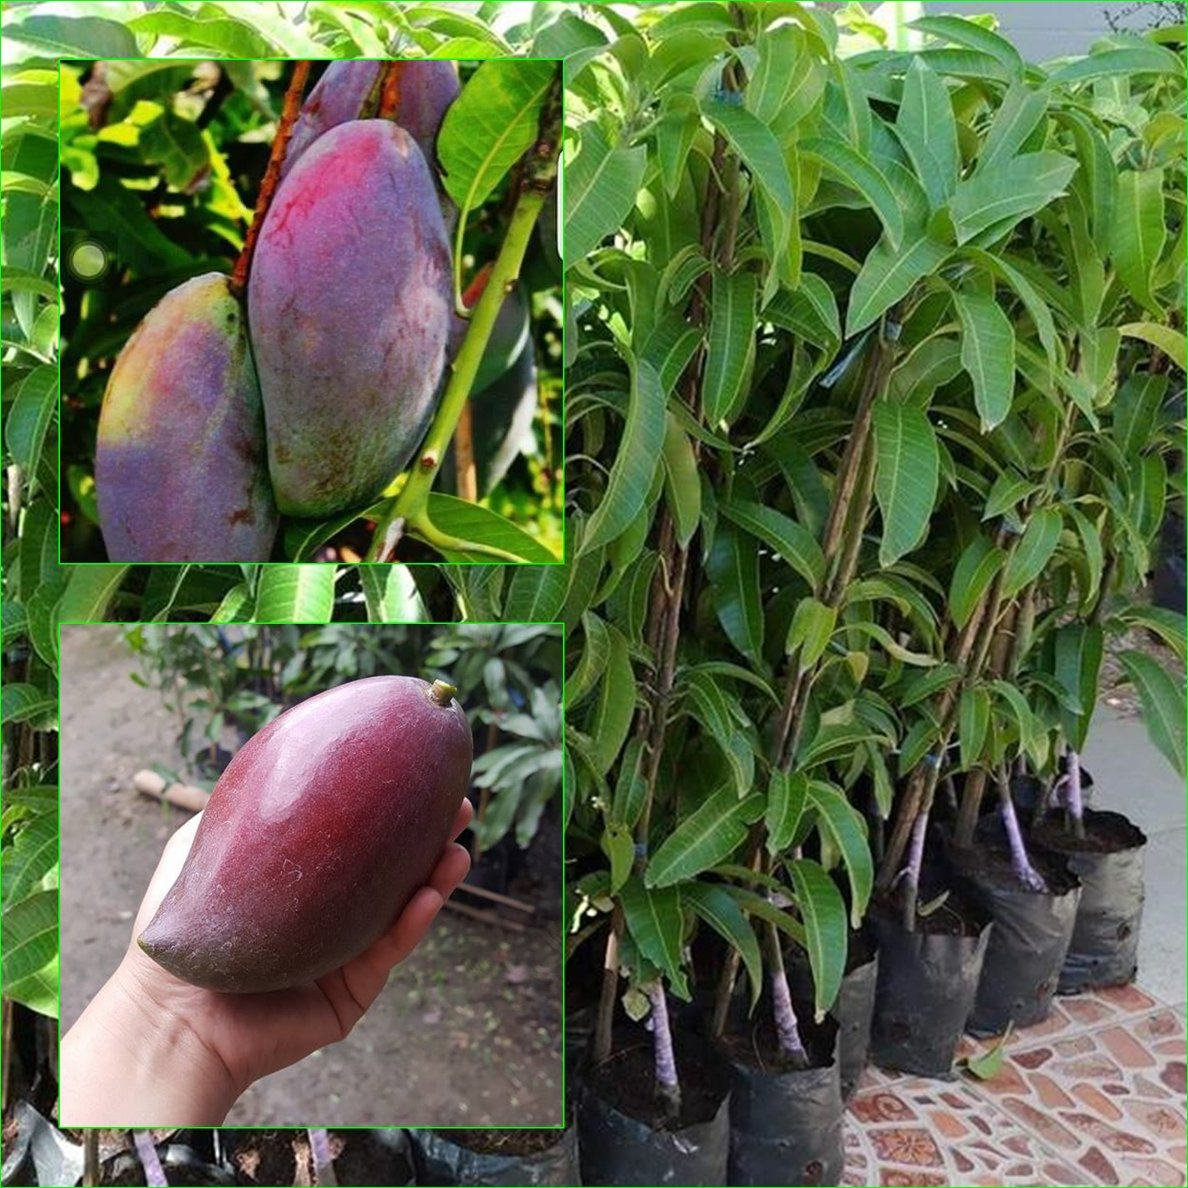 1 GRAFTED Mango Tree plant Nam-Dok-Mai Si Mueng 18'' Tall Thai Purple Mango Fruit Juicy Direct from Thailand Free Phytosanitary Cert.